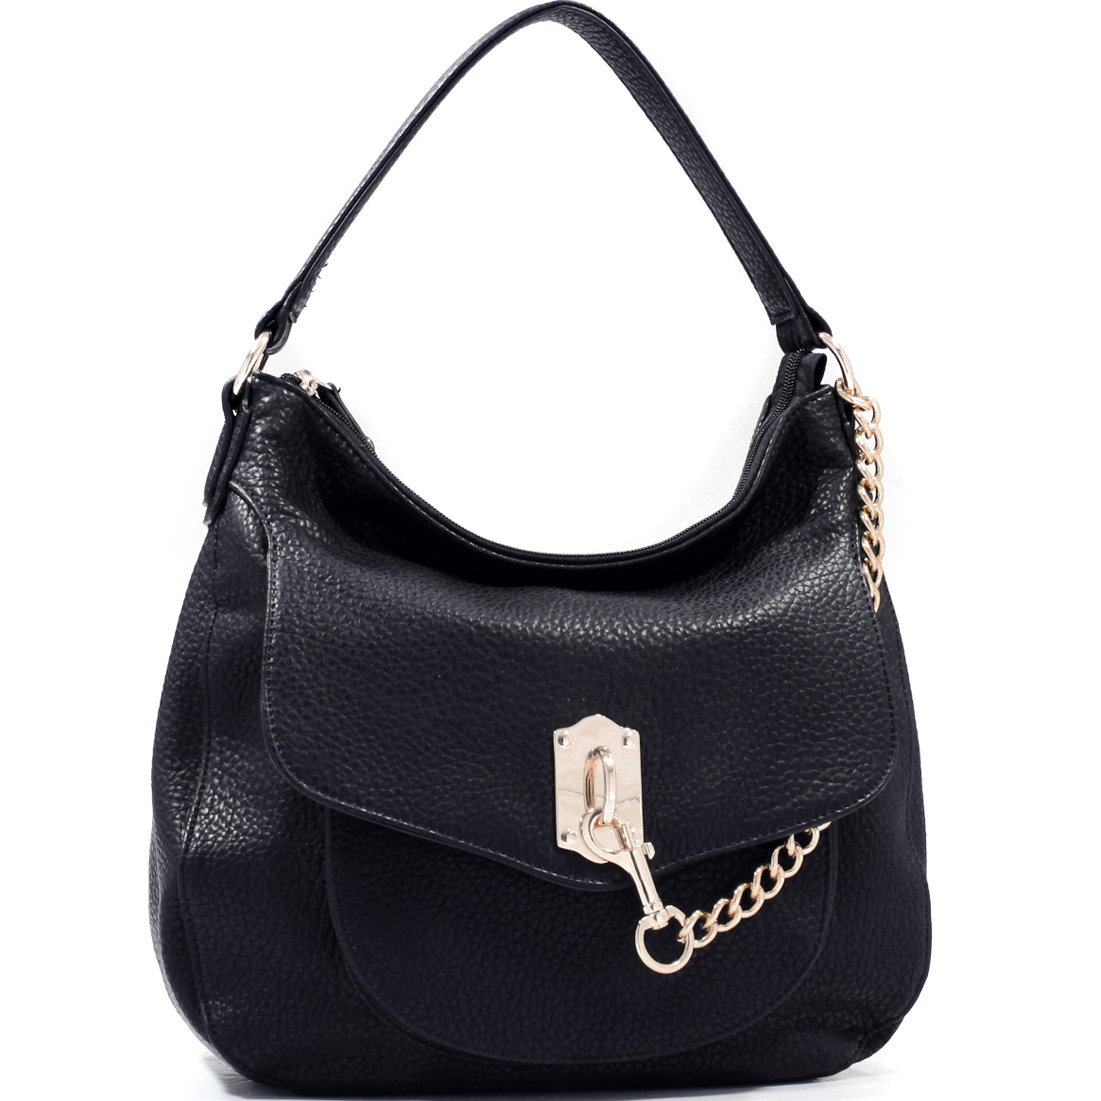 Women's Fashion Hobo Bag with Key Chain Strap